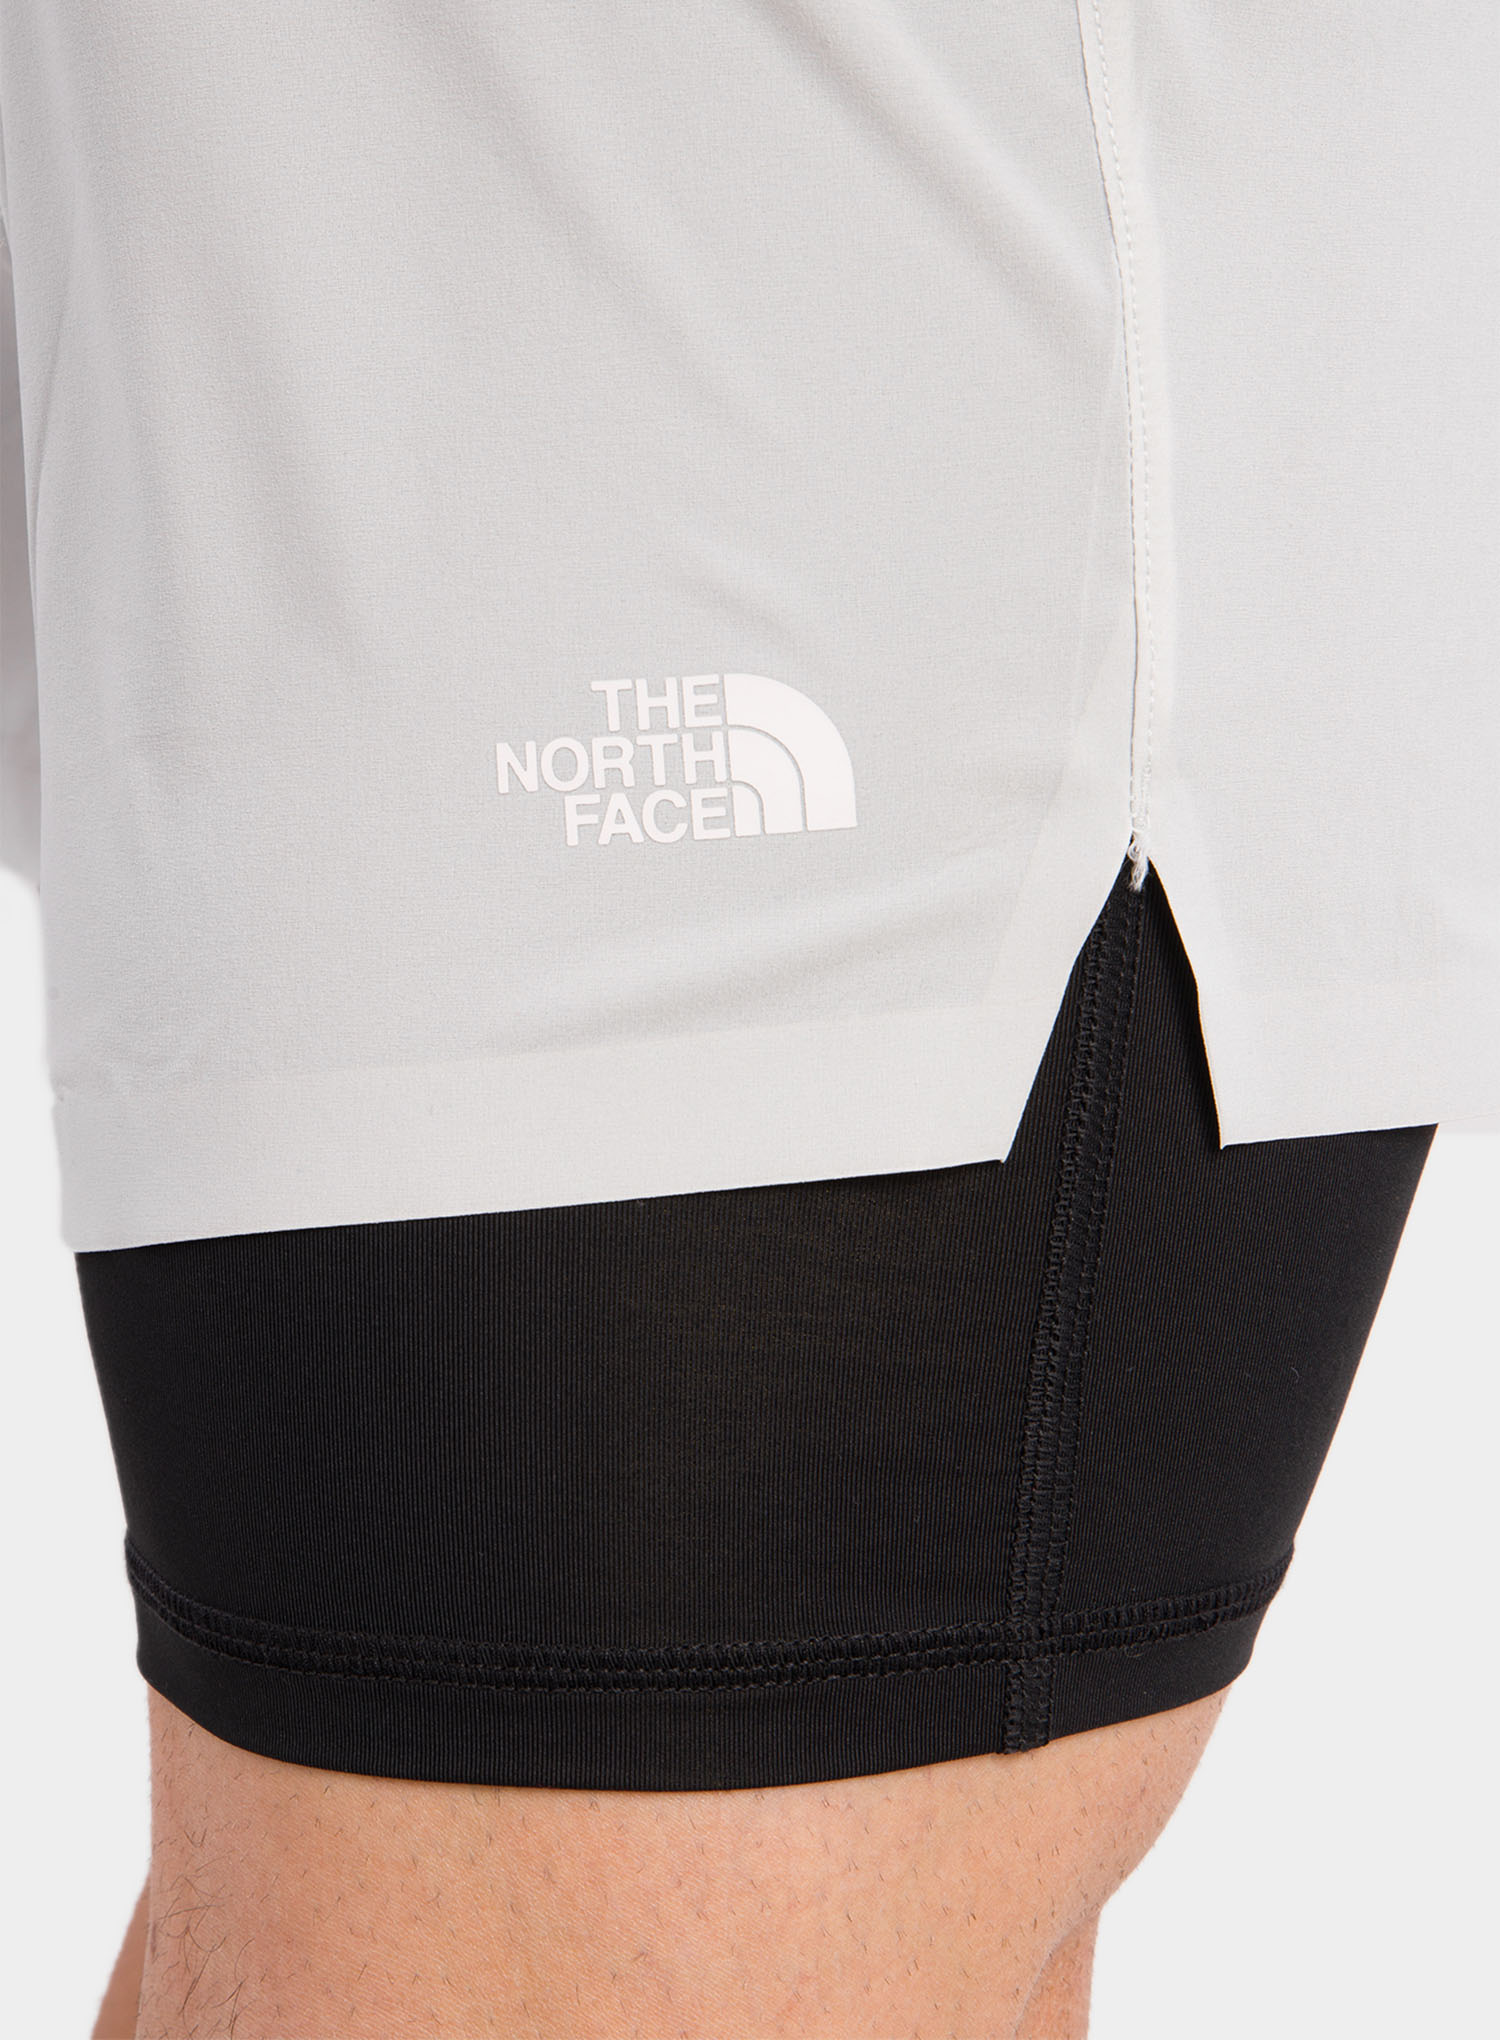 Spodenki The North Face Circadian Comp Lined Short - grey/blk - zdjęcie nr. 6